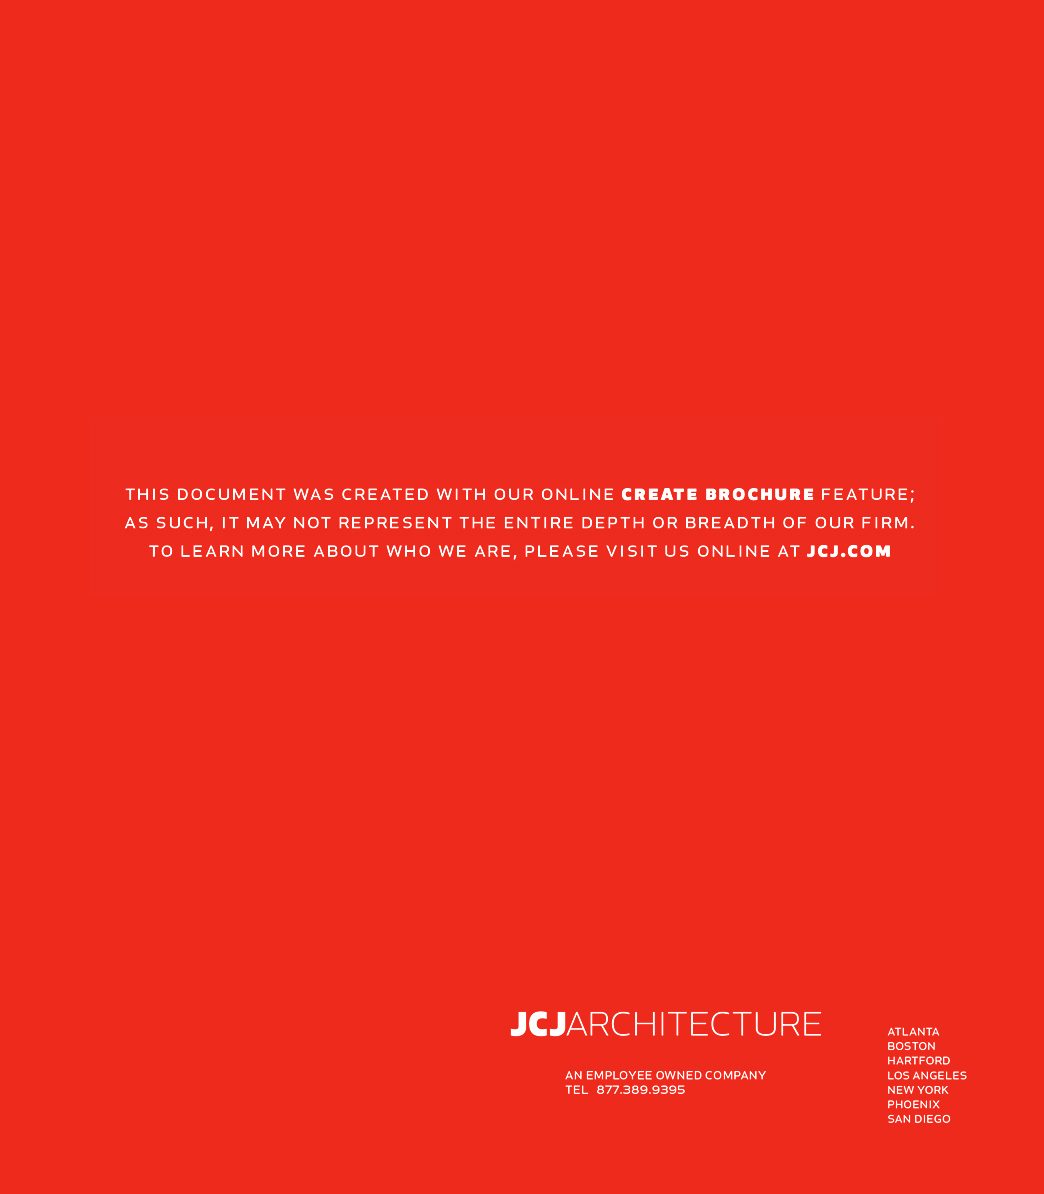 JCJ Architecture Brochure Back Cover